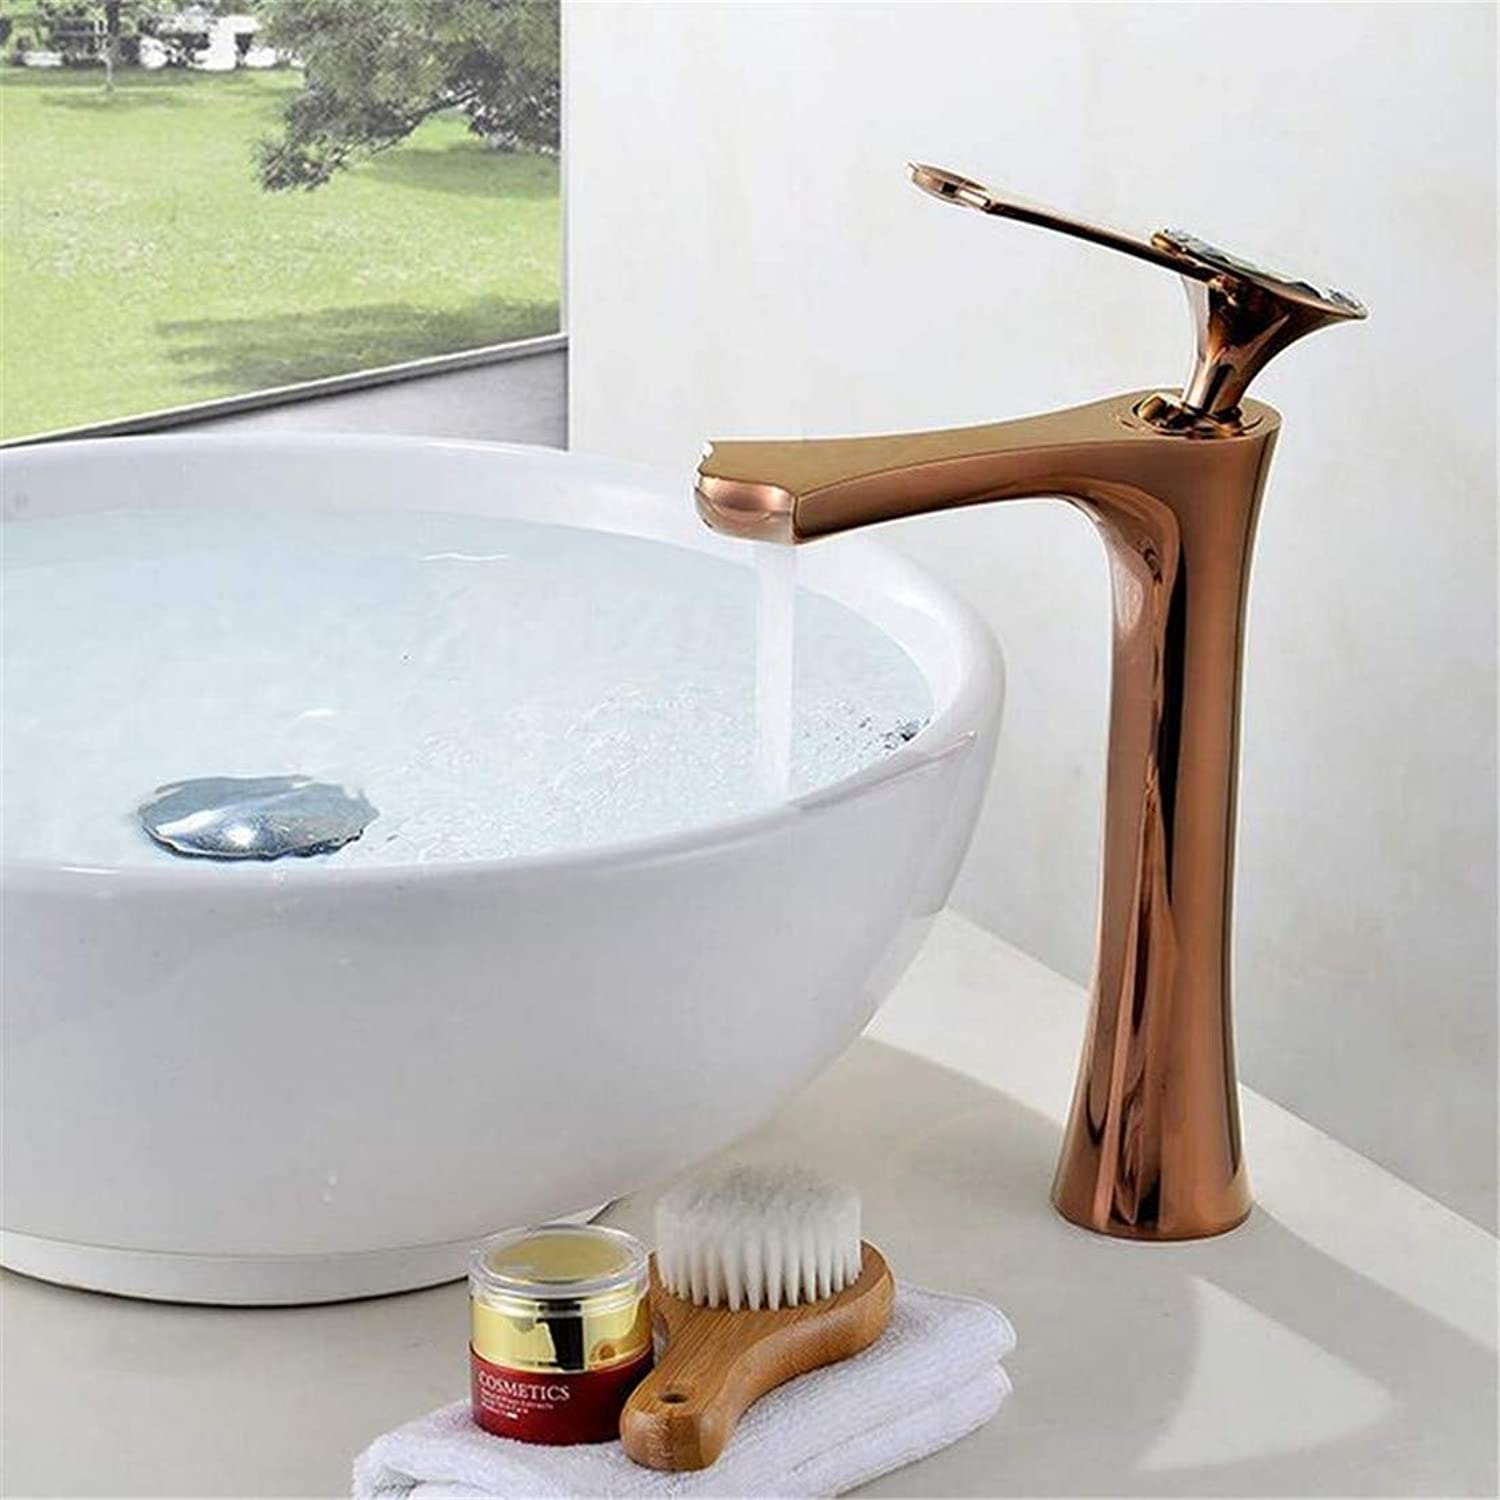 Faucet Chrome Brass Retro Single Single Cold Water Tap with Vegetables Basin Faucet Kitchen Faucet